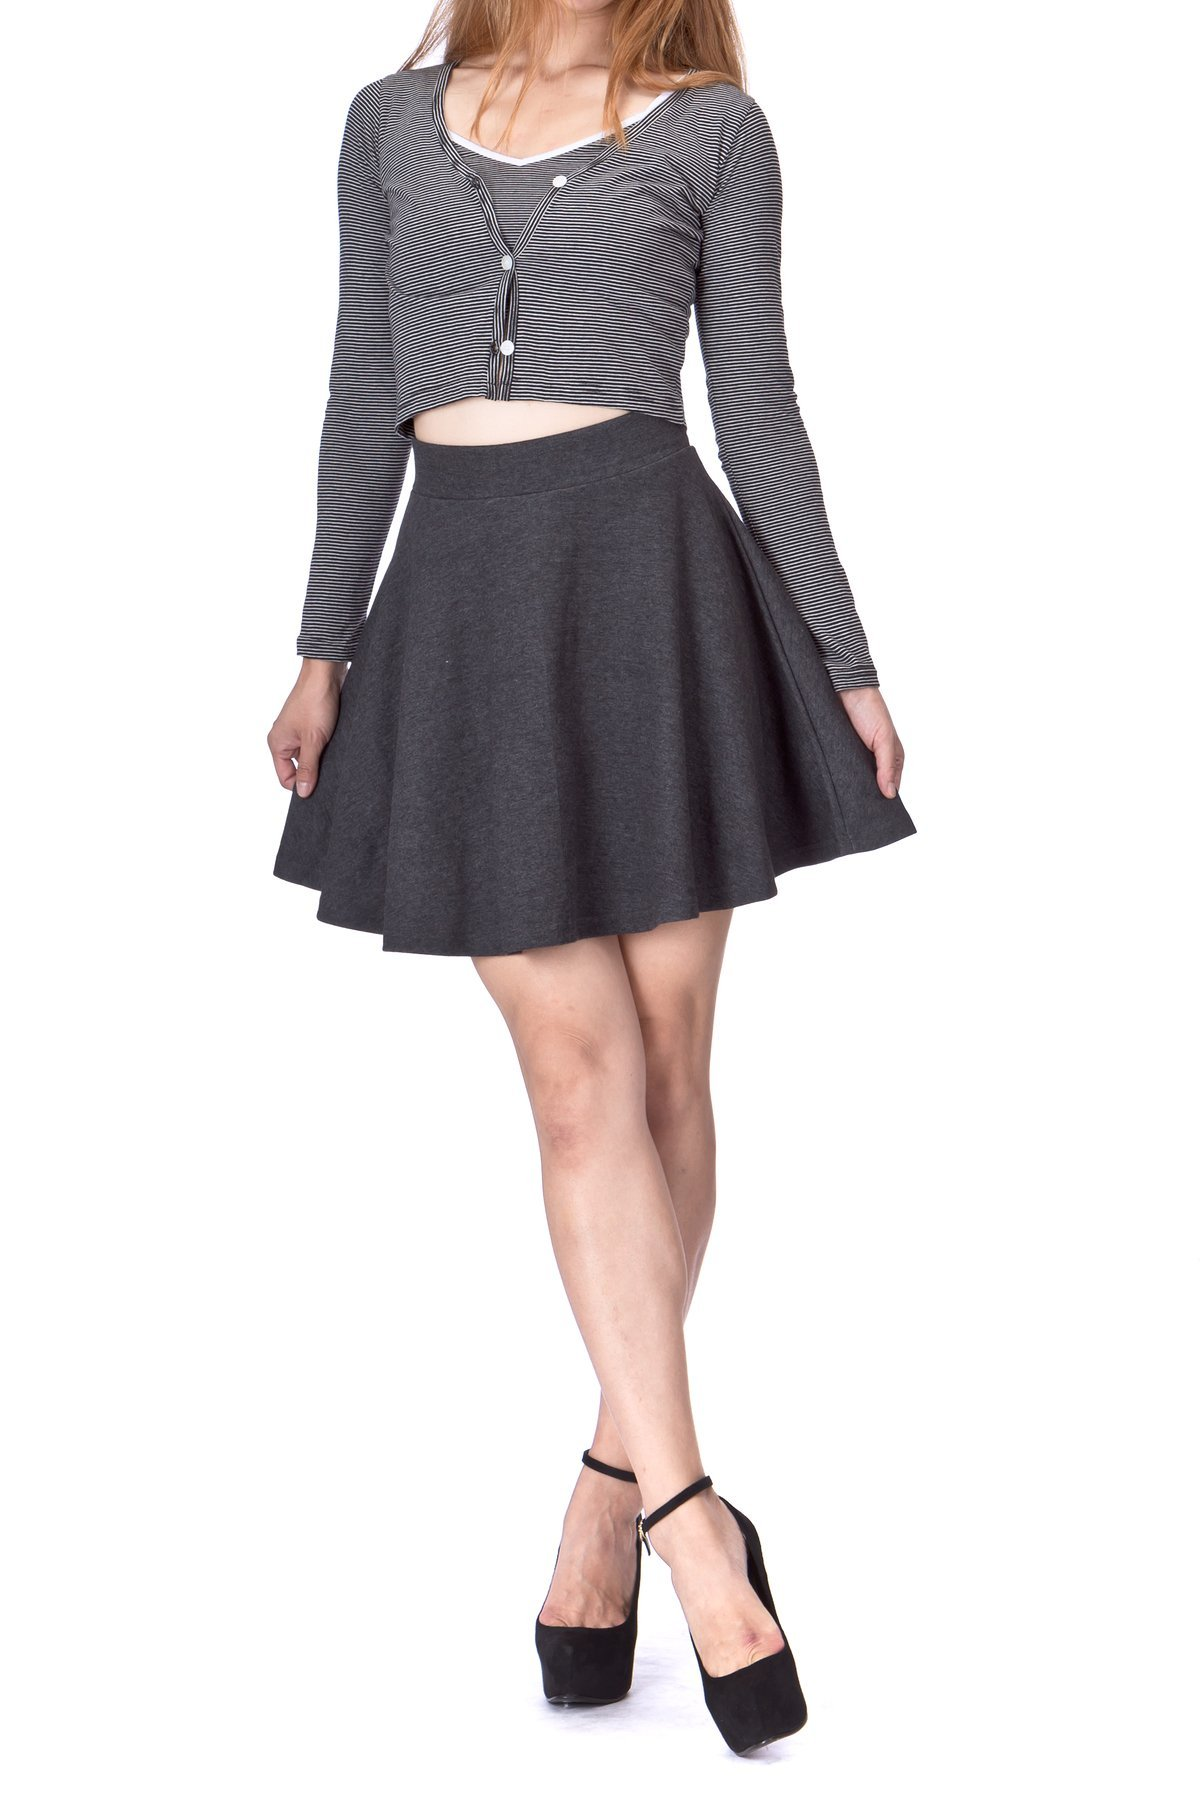 Basic Solid Stretchy Cotton High Waist A line Flared Skater Mini Skirt Charcoal 01 1